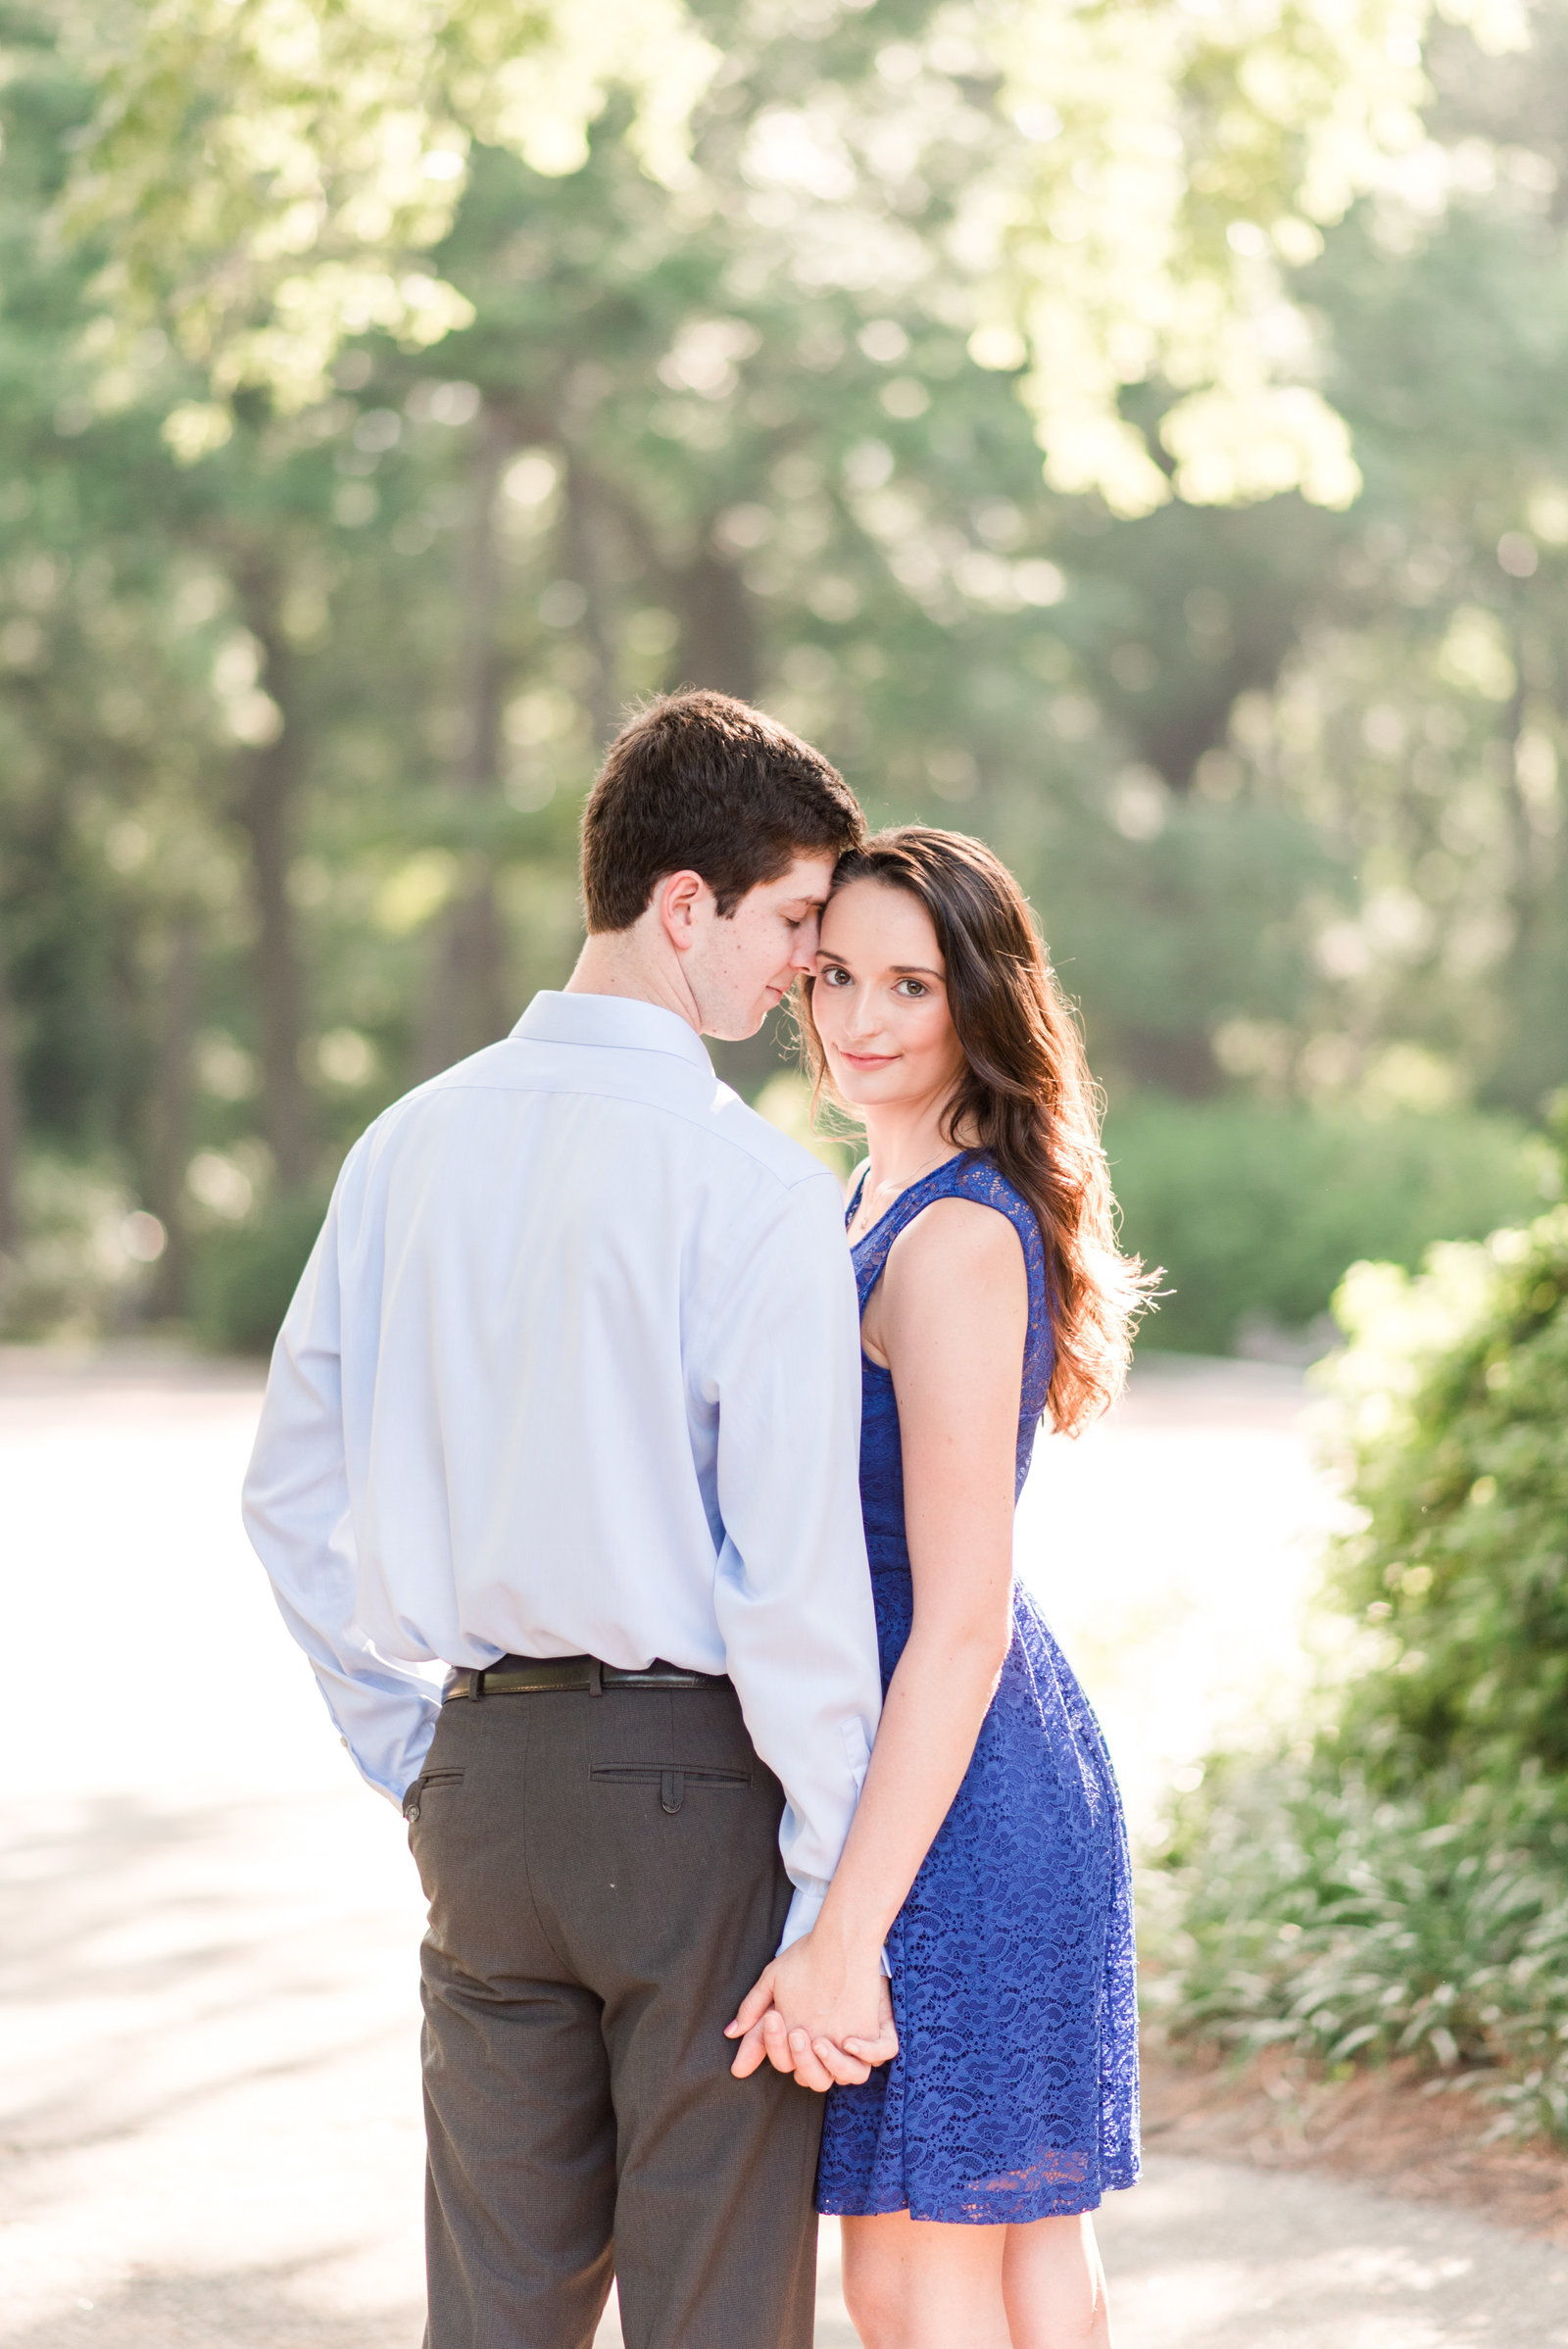 norfolk-botanical-gardens-engagement-session-by-virginia-wedding-photographer-photo82